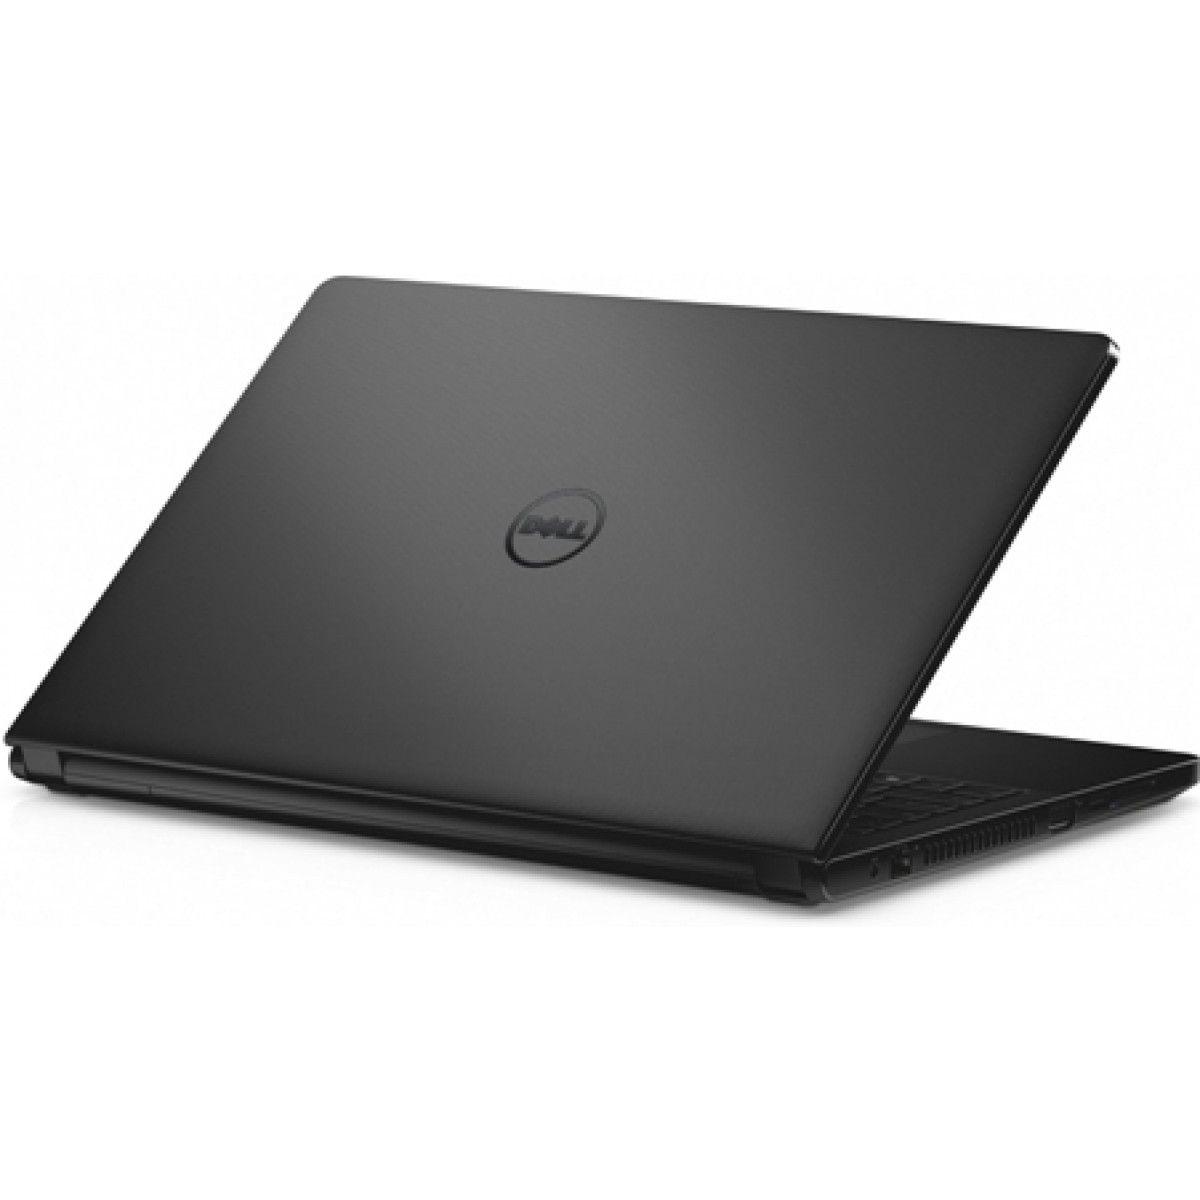 Notebook Dell Intel Core I5-5200U, 8GB de Memória, HD de 1TB, Leitor de DVD, Tela LED de 15.6